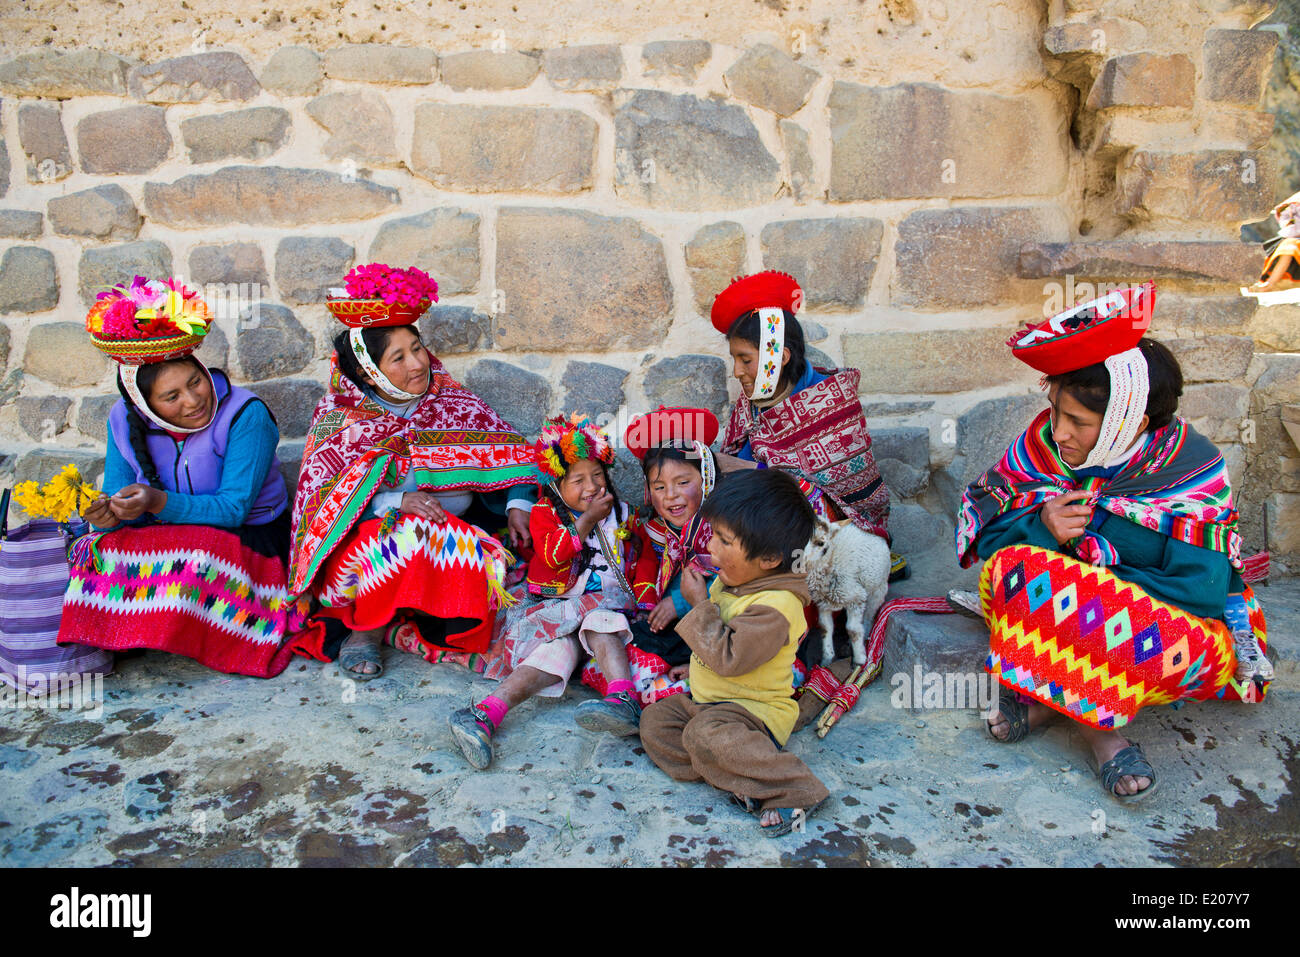 Women and children in traditional dress of the Quechua Indians sitting on the floor in front of a wall, Ollantaytambo - Stock Image